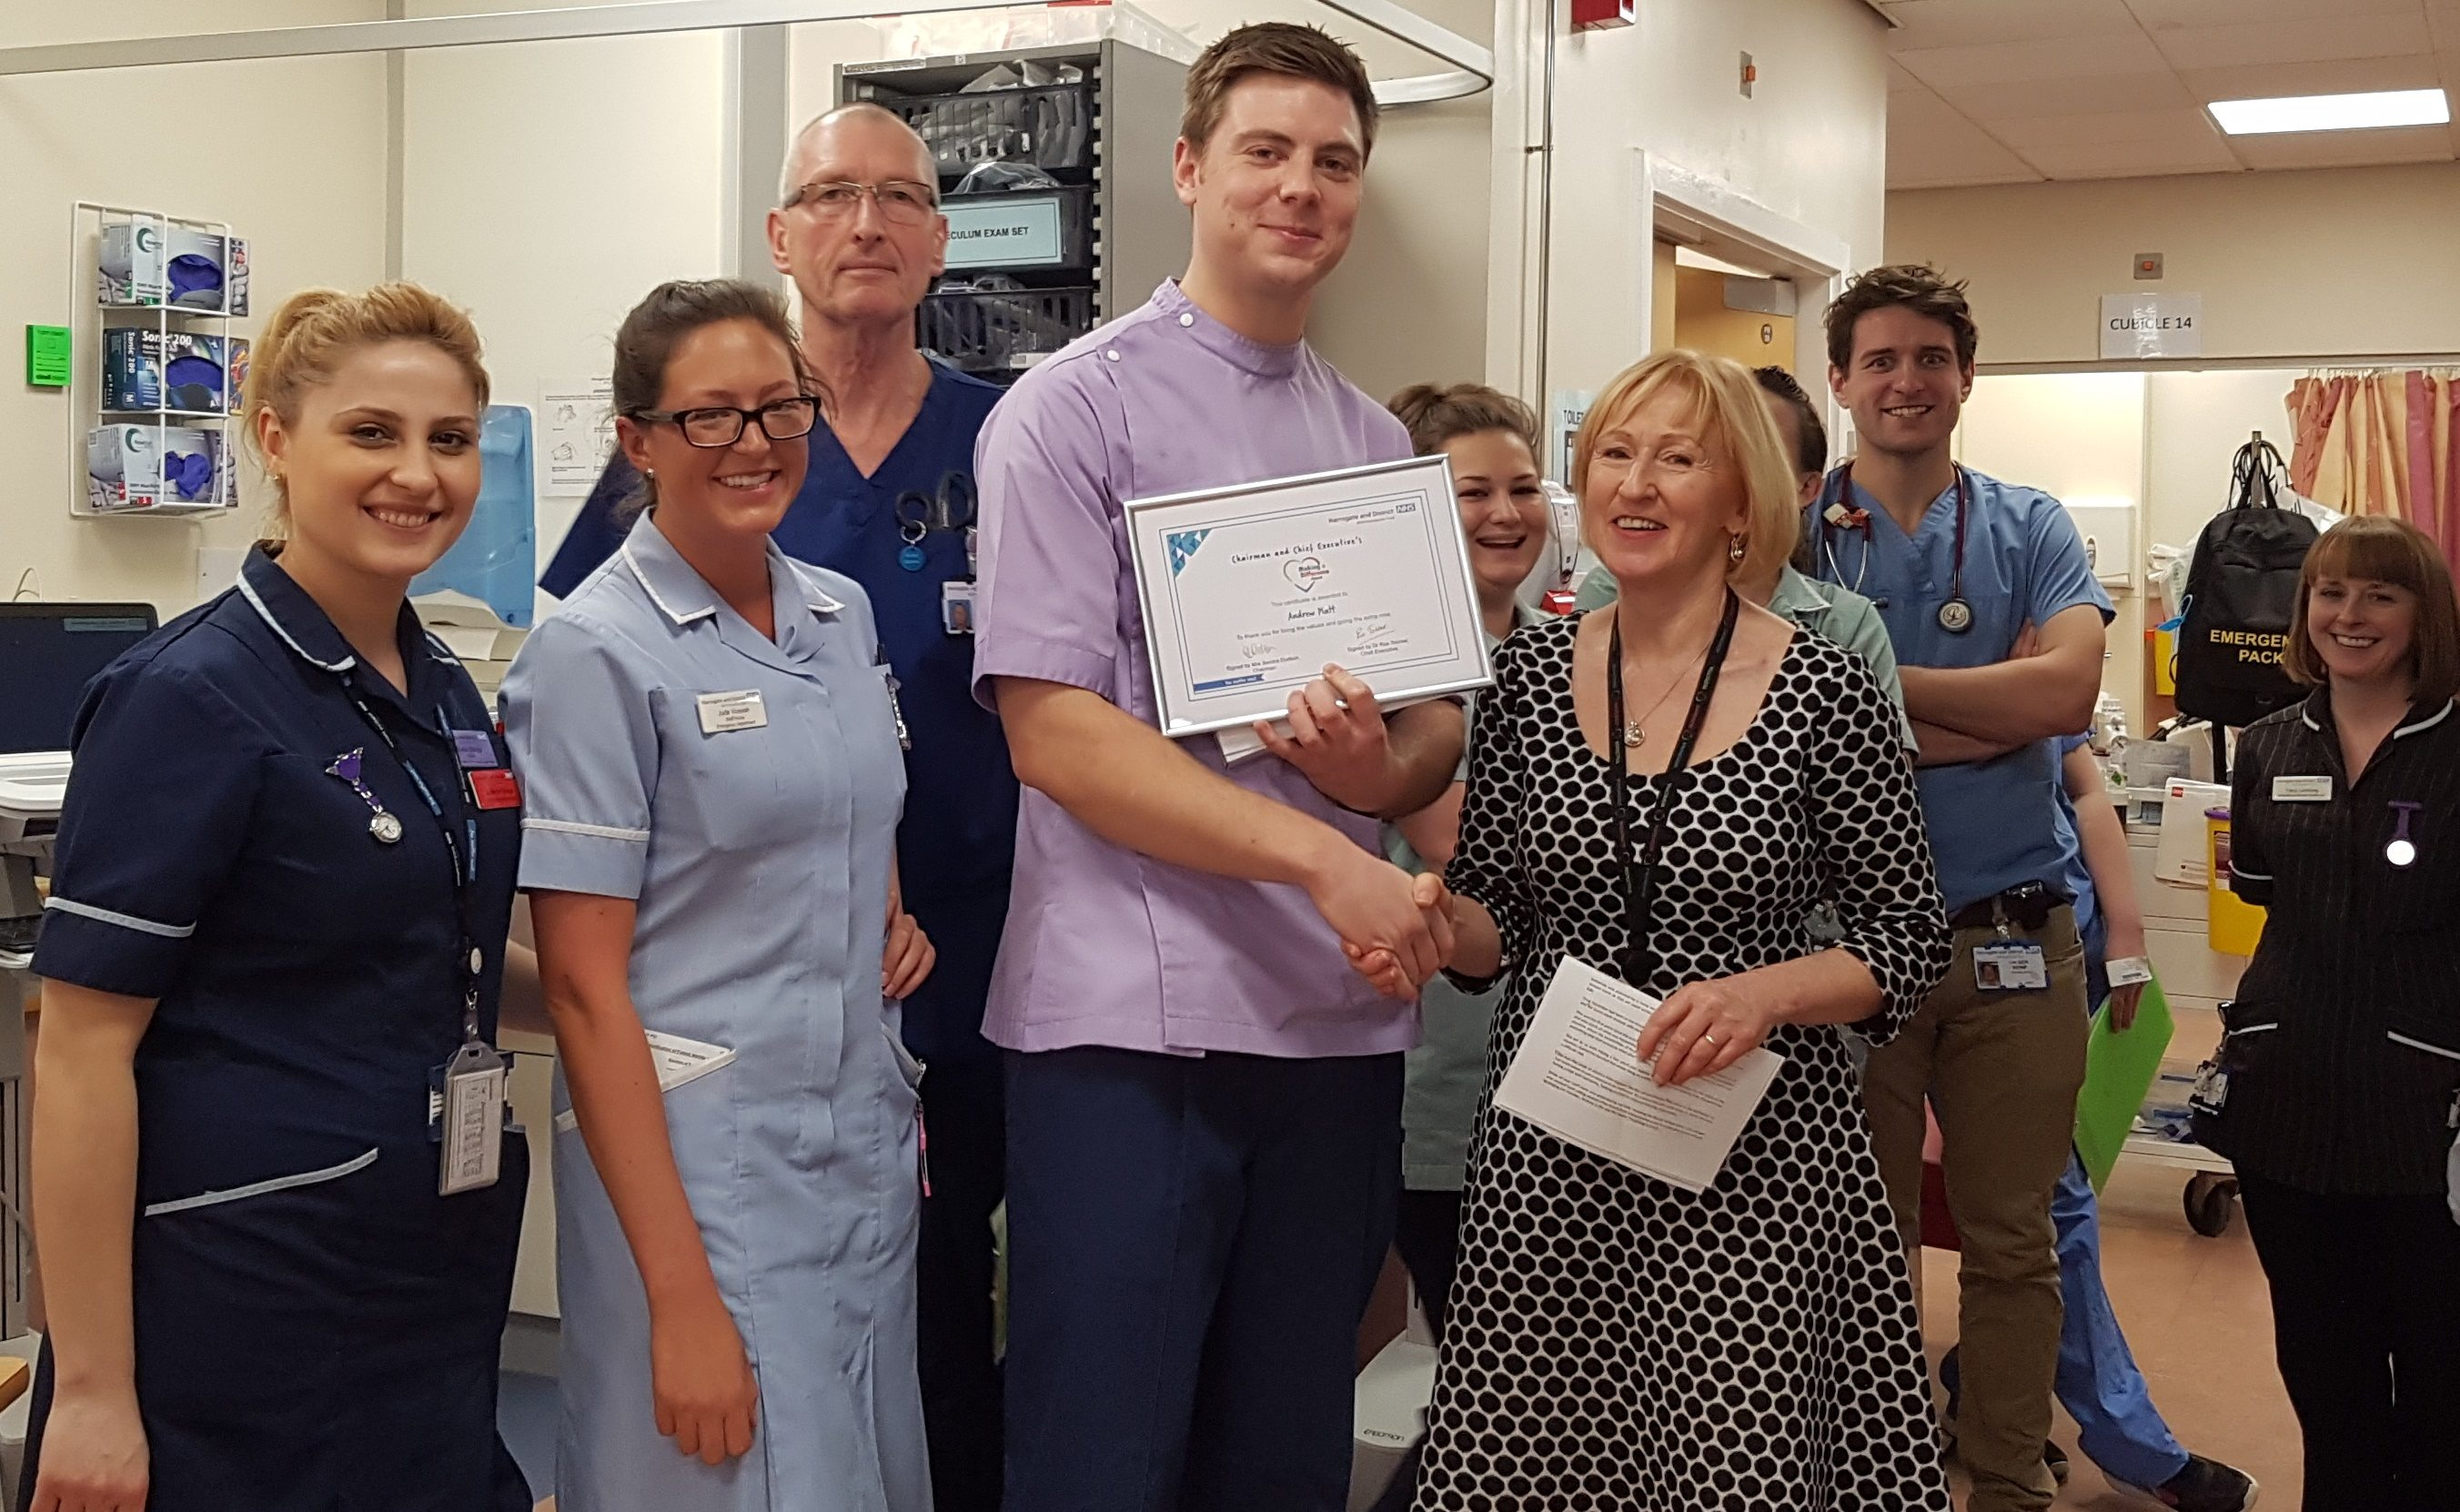 Pictured - Andrew Platt with colleagues from the Emergency Department and Mrs Sandra Dodson, Chairman